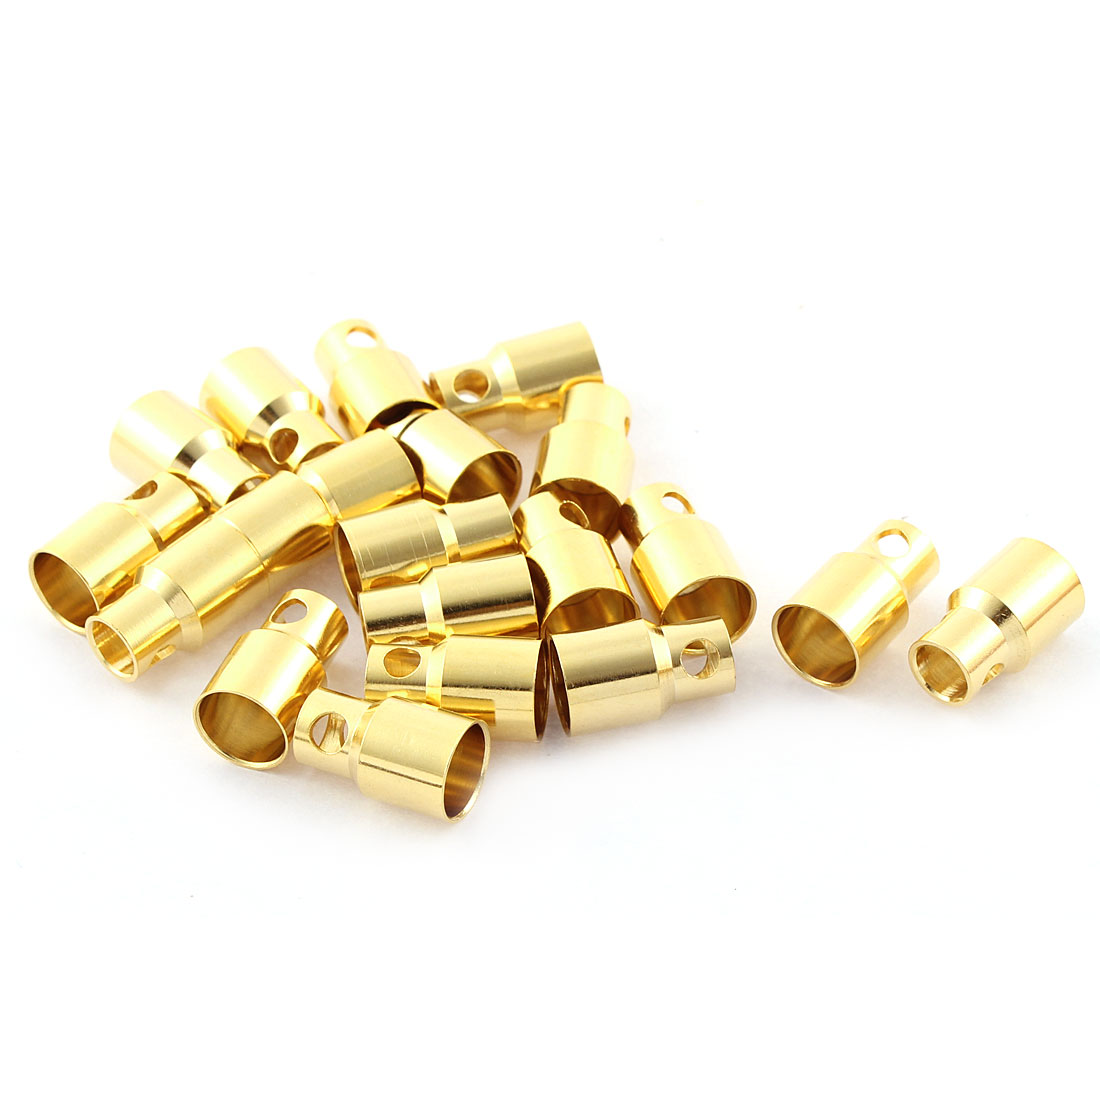 RC Battery 8mm Inside Dia 15mm Length Banana Female Plug Connector 20 Pcs